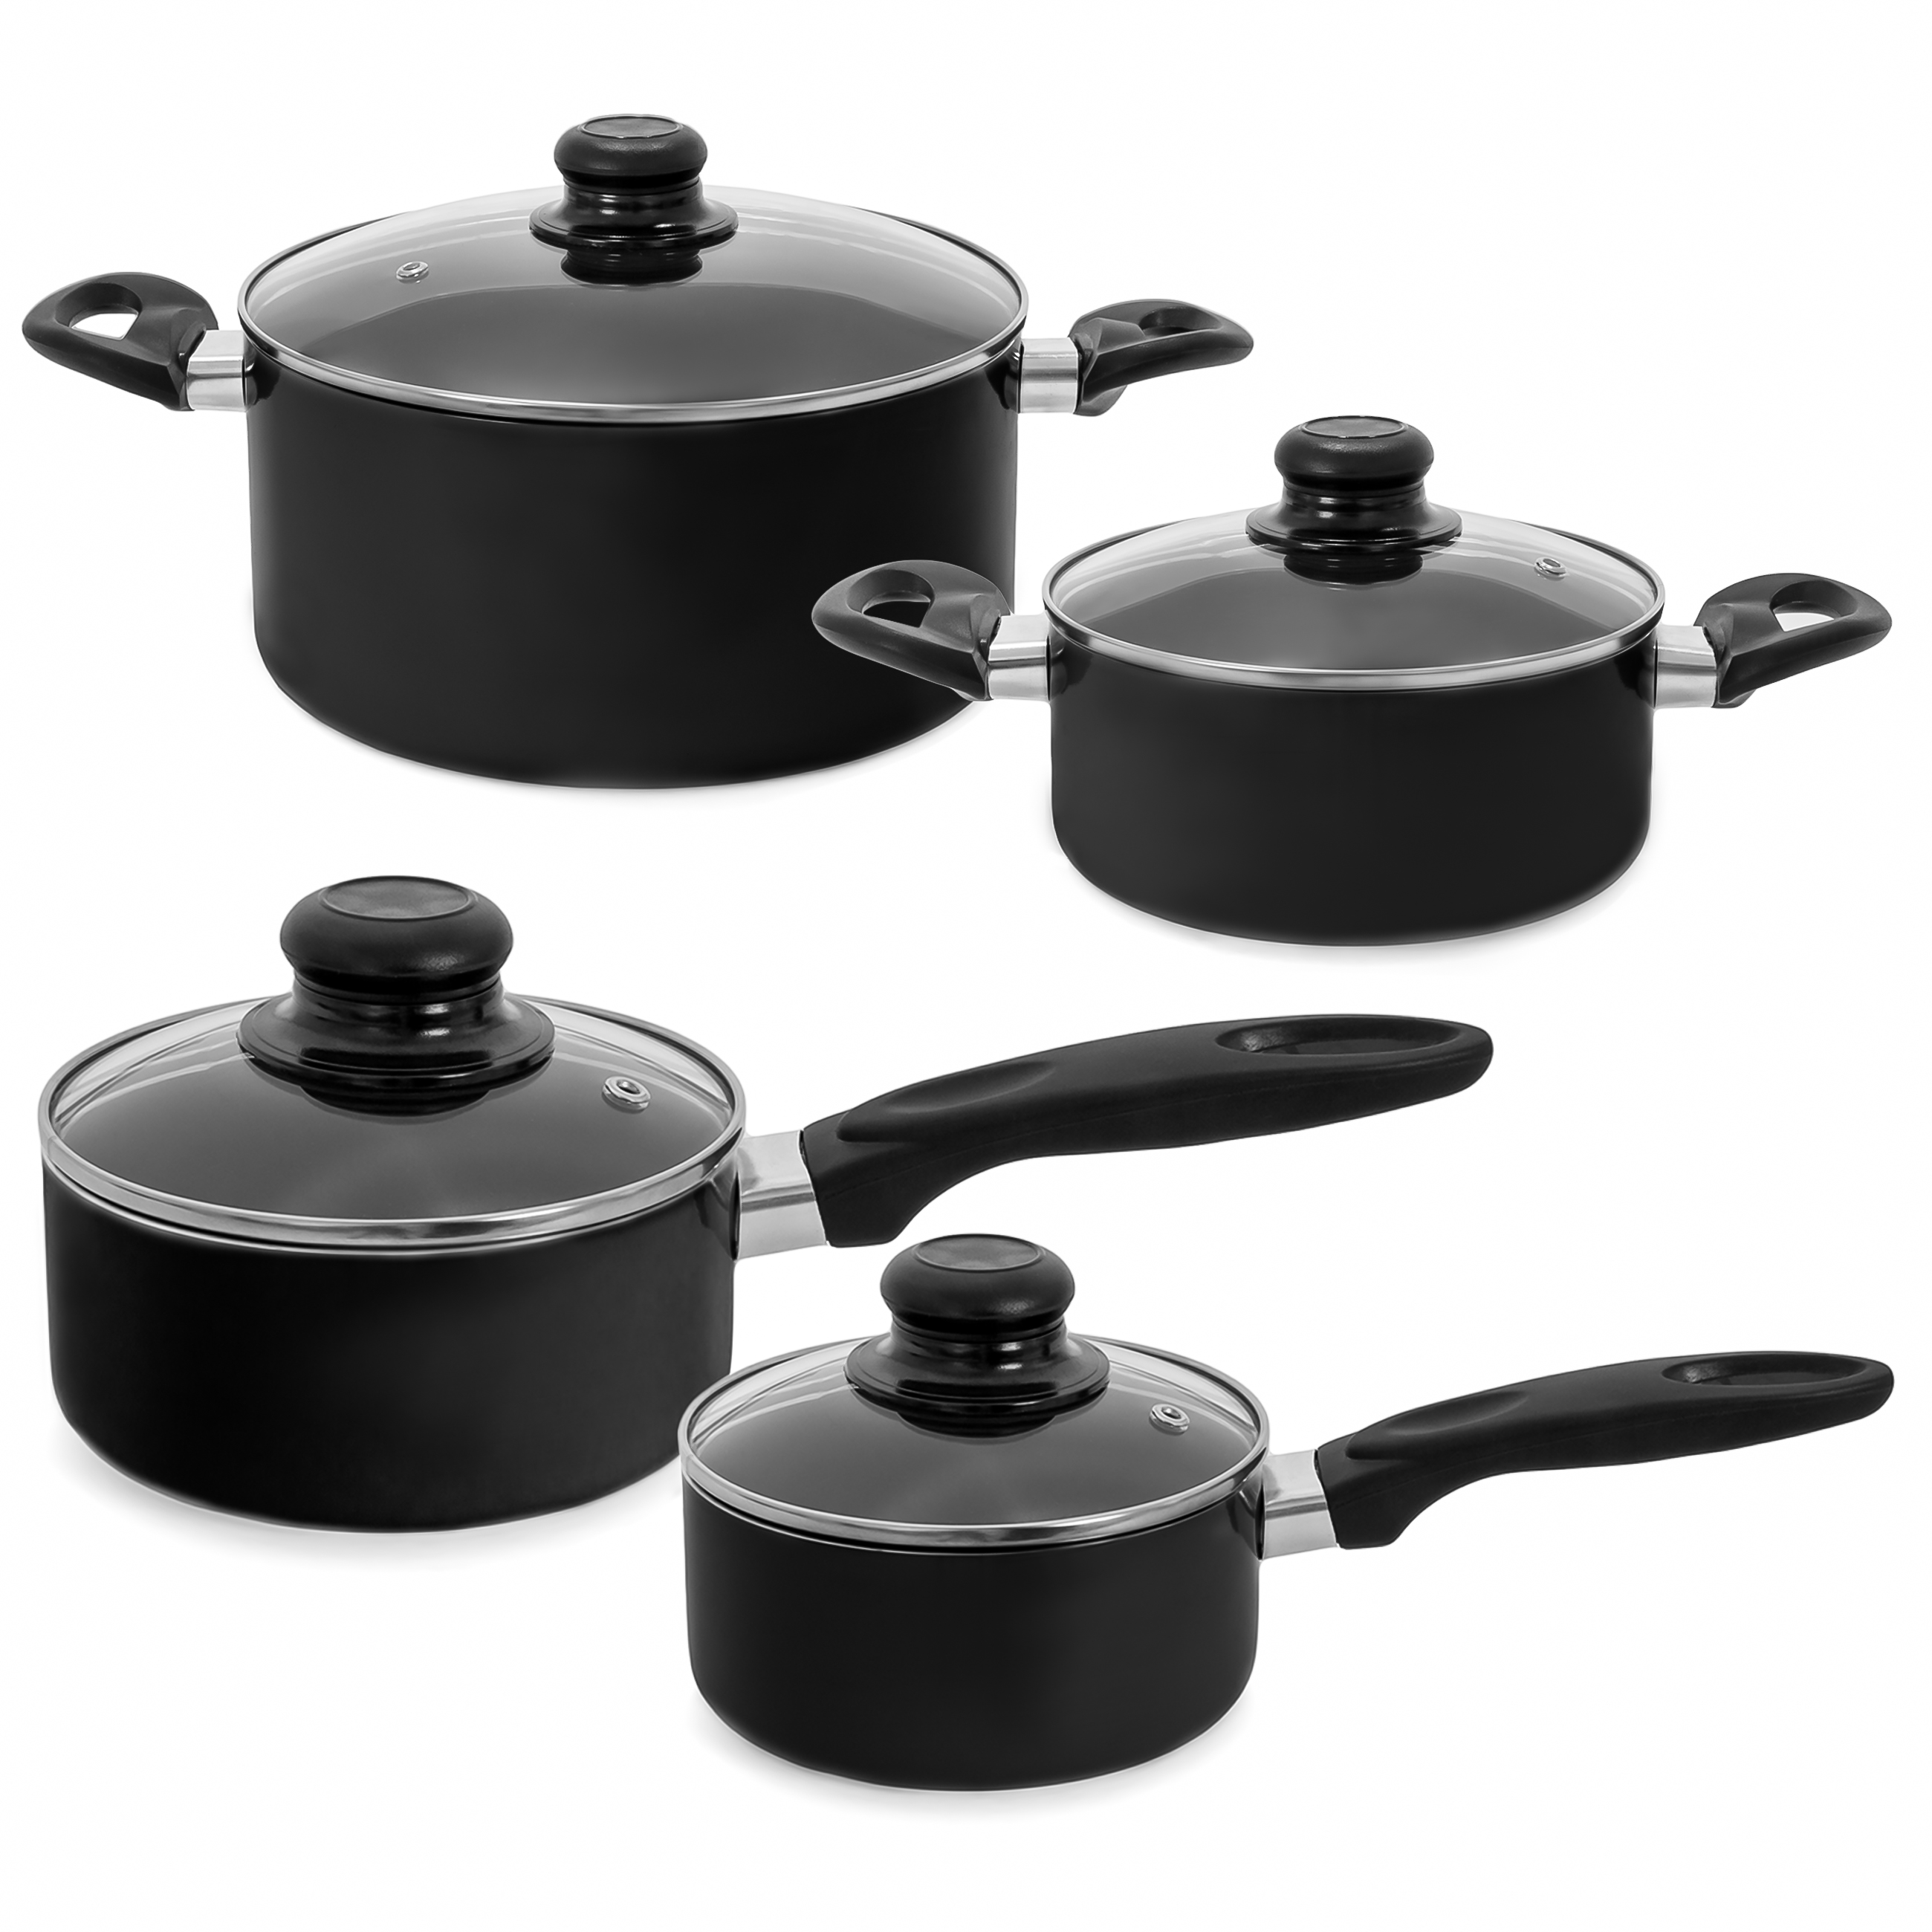 Black Friday Kitchen Pots And Pans Set